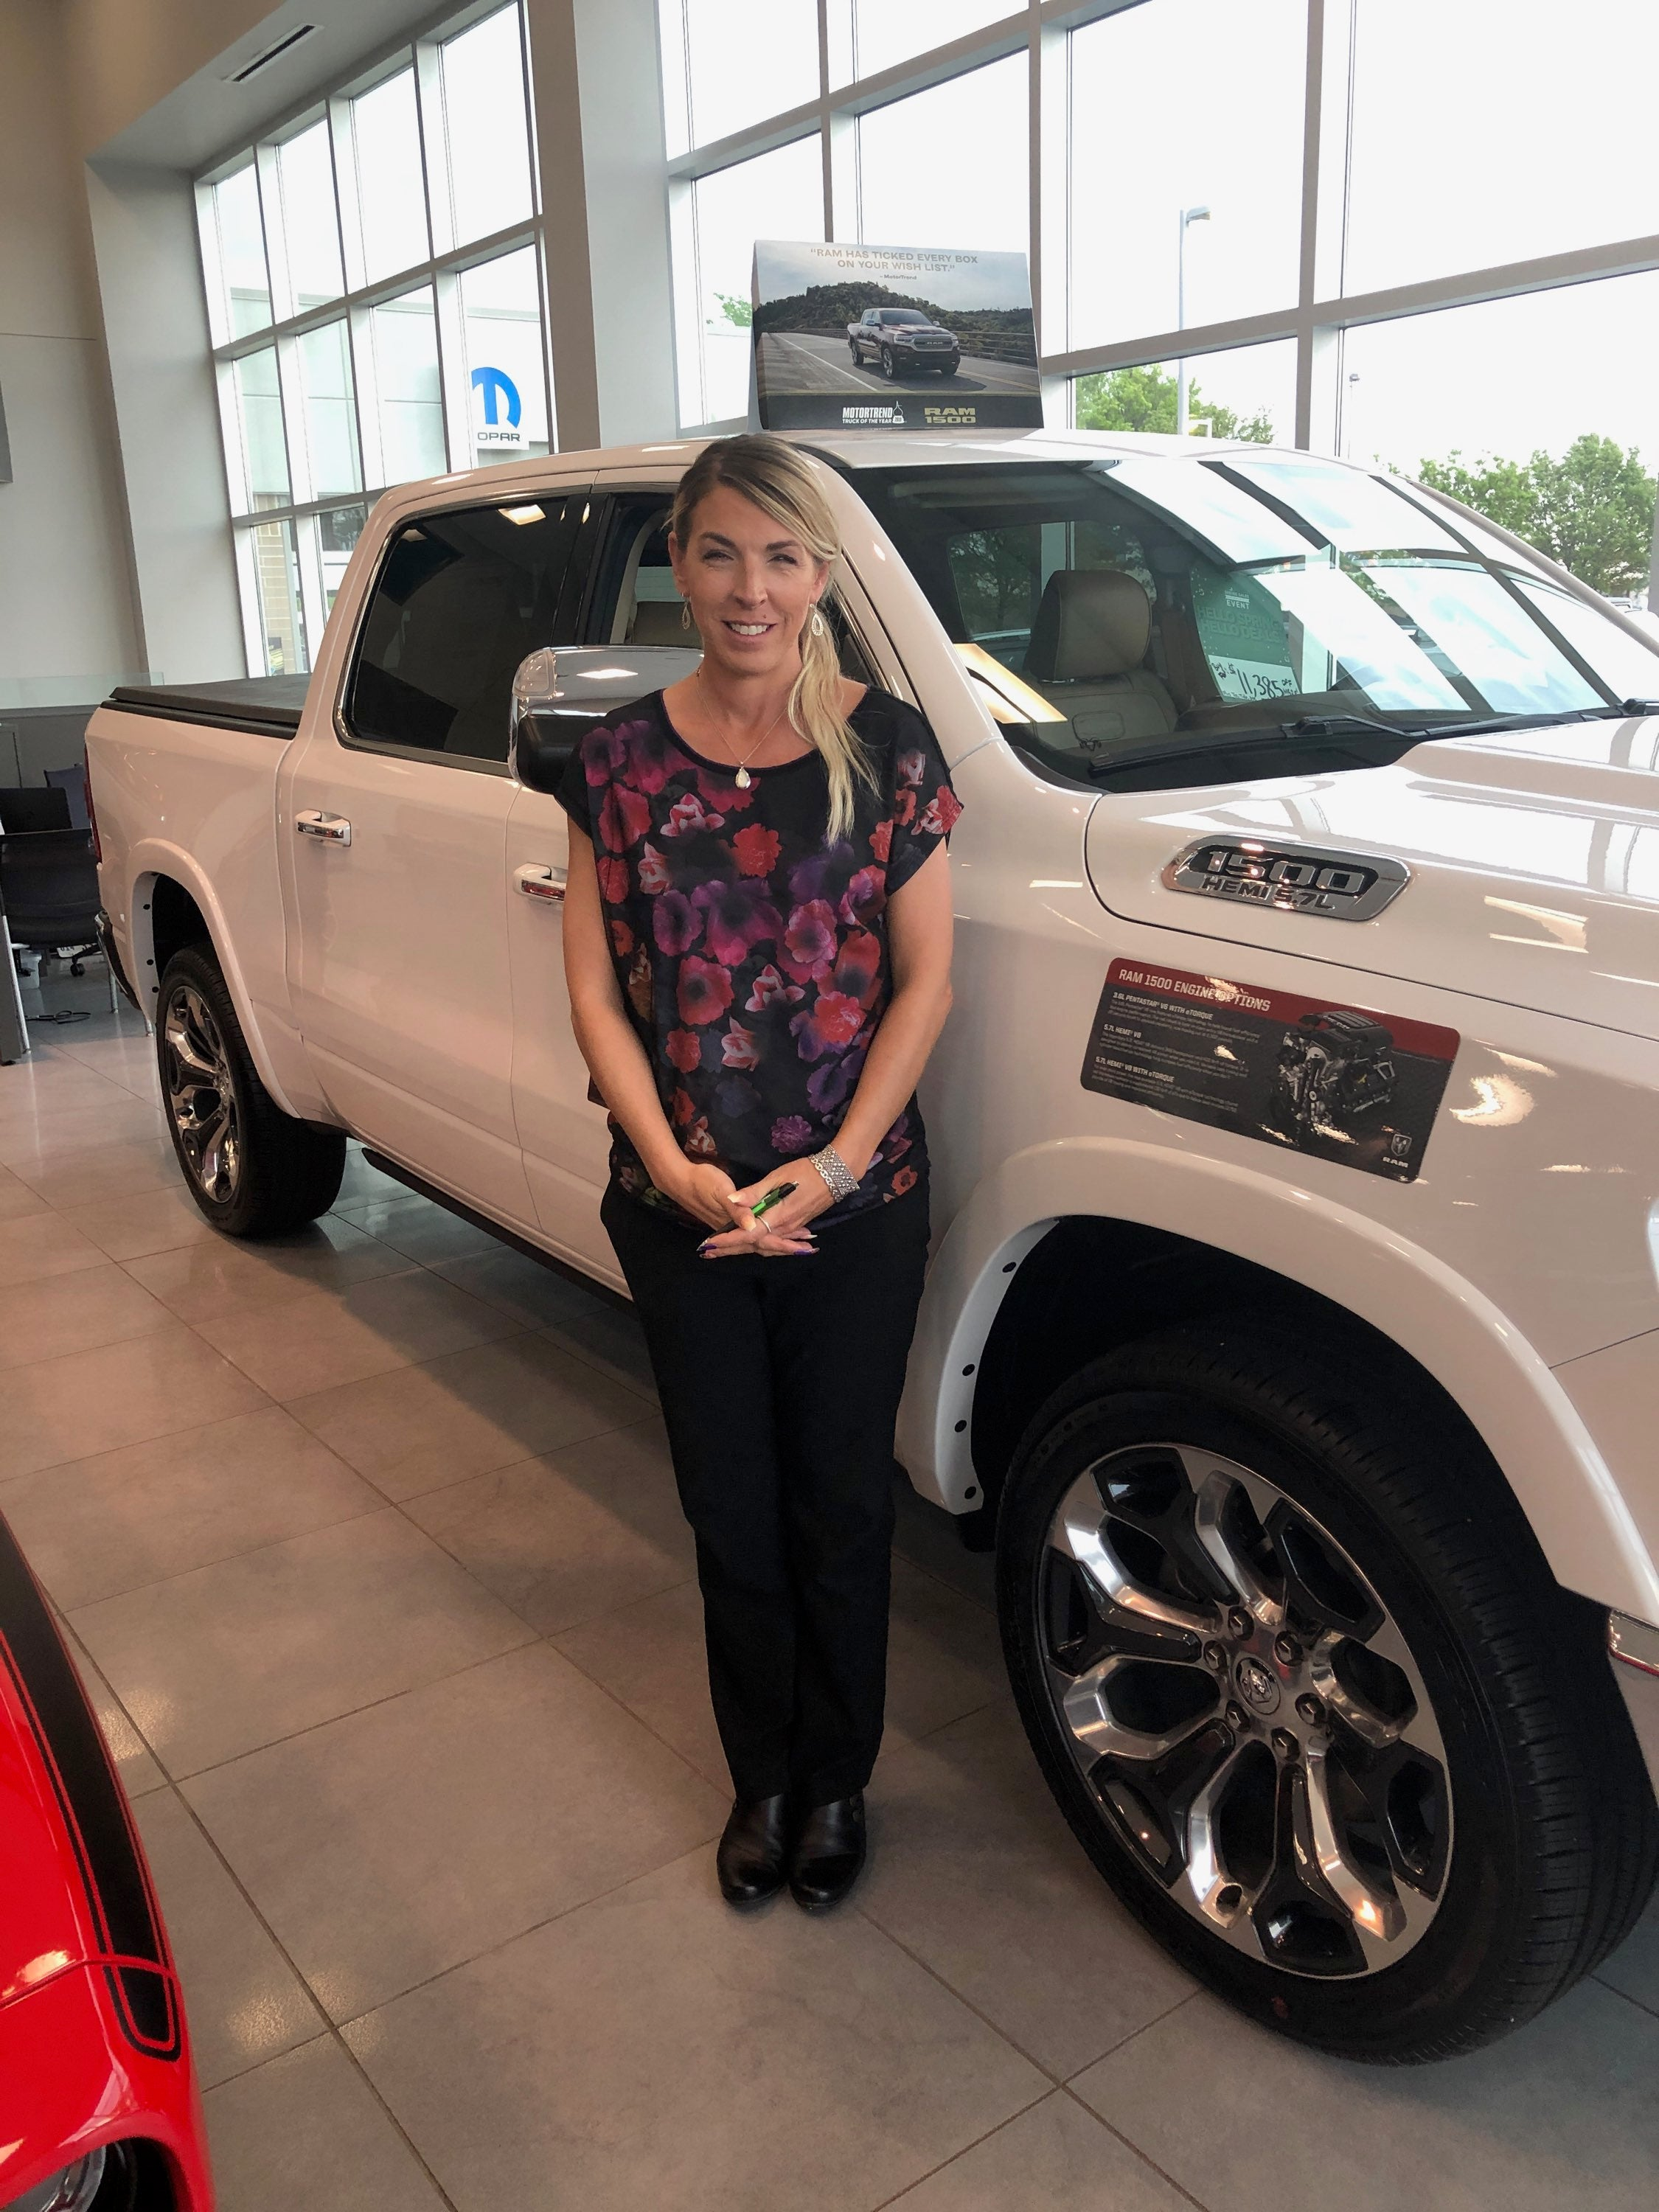 North Olmsted Dodge >> Meet Our Staff | CDJR Dealership in North Olmsted, OH | North Olmsted Chrysler Jeep Dodge Ram